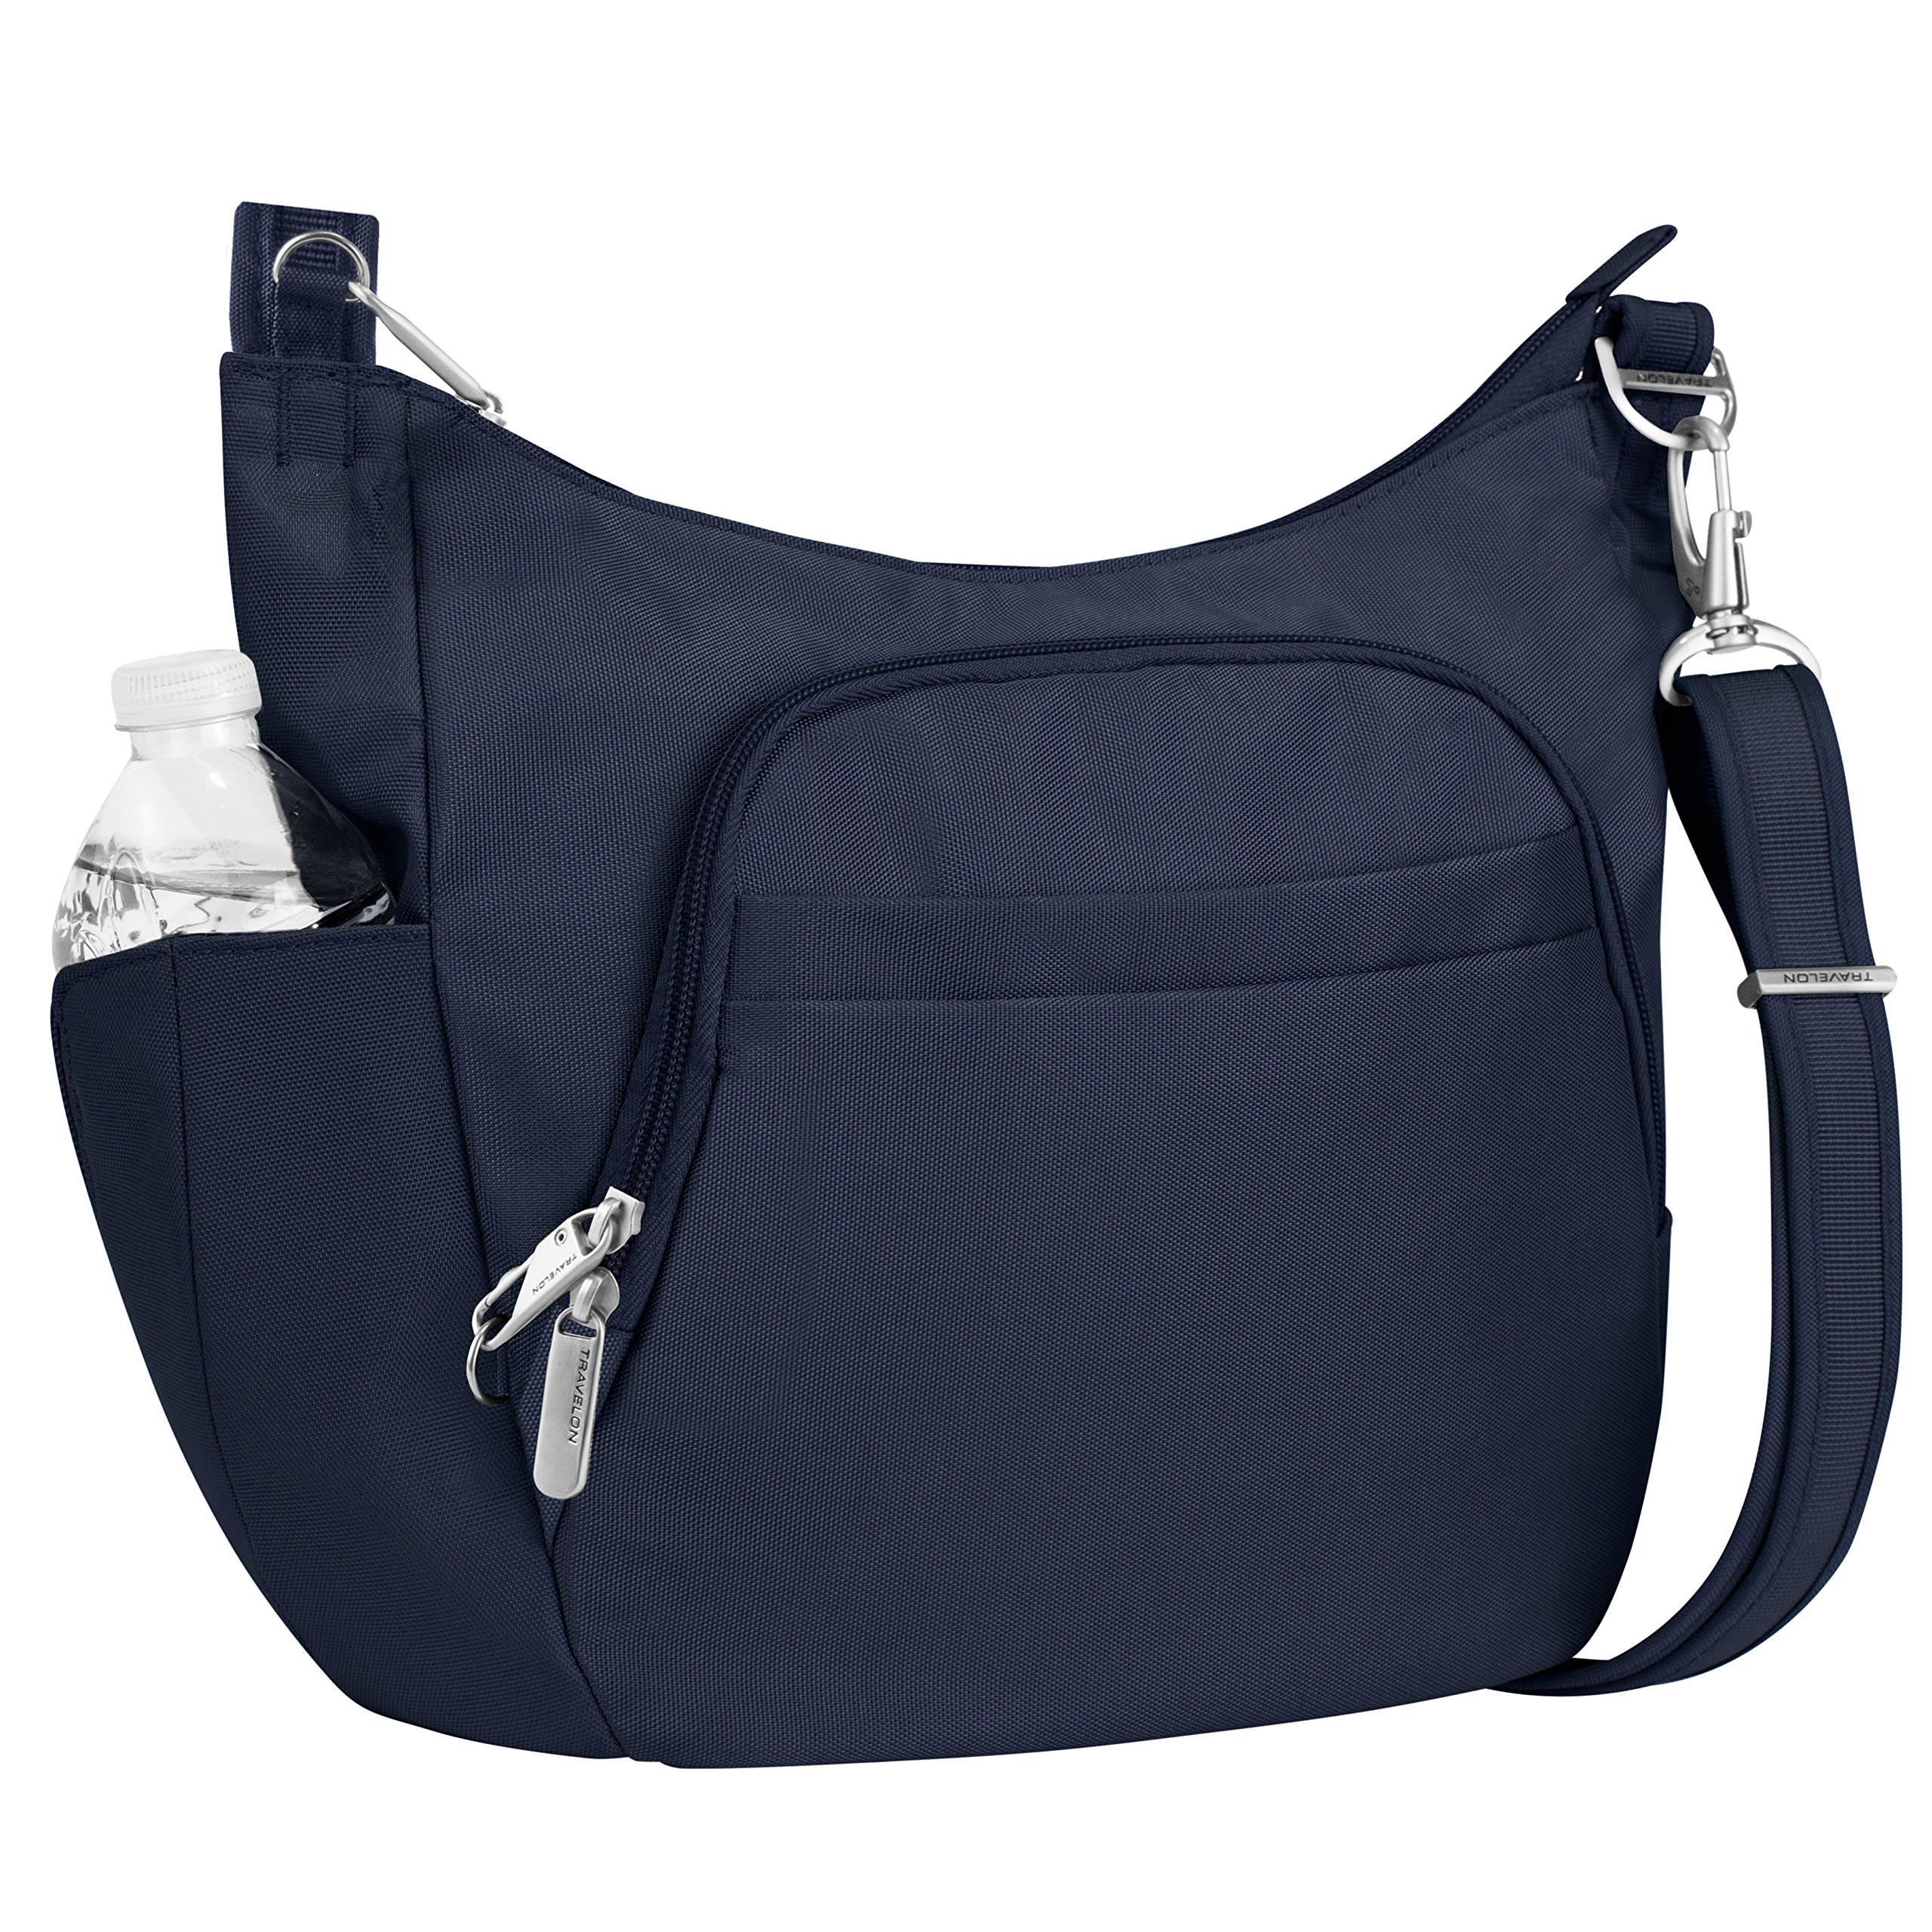 Travelon Anti-Theft Cross-Body Bucket Bag, Midnight, One Size - 42757 360 by Travelon (Image #1)